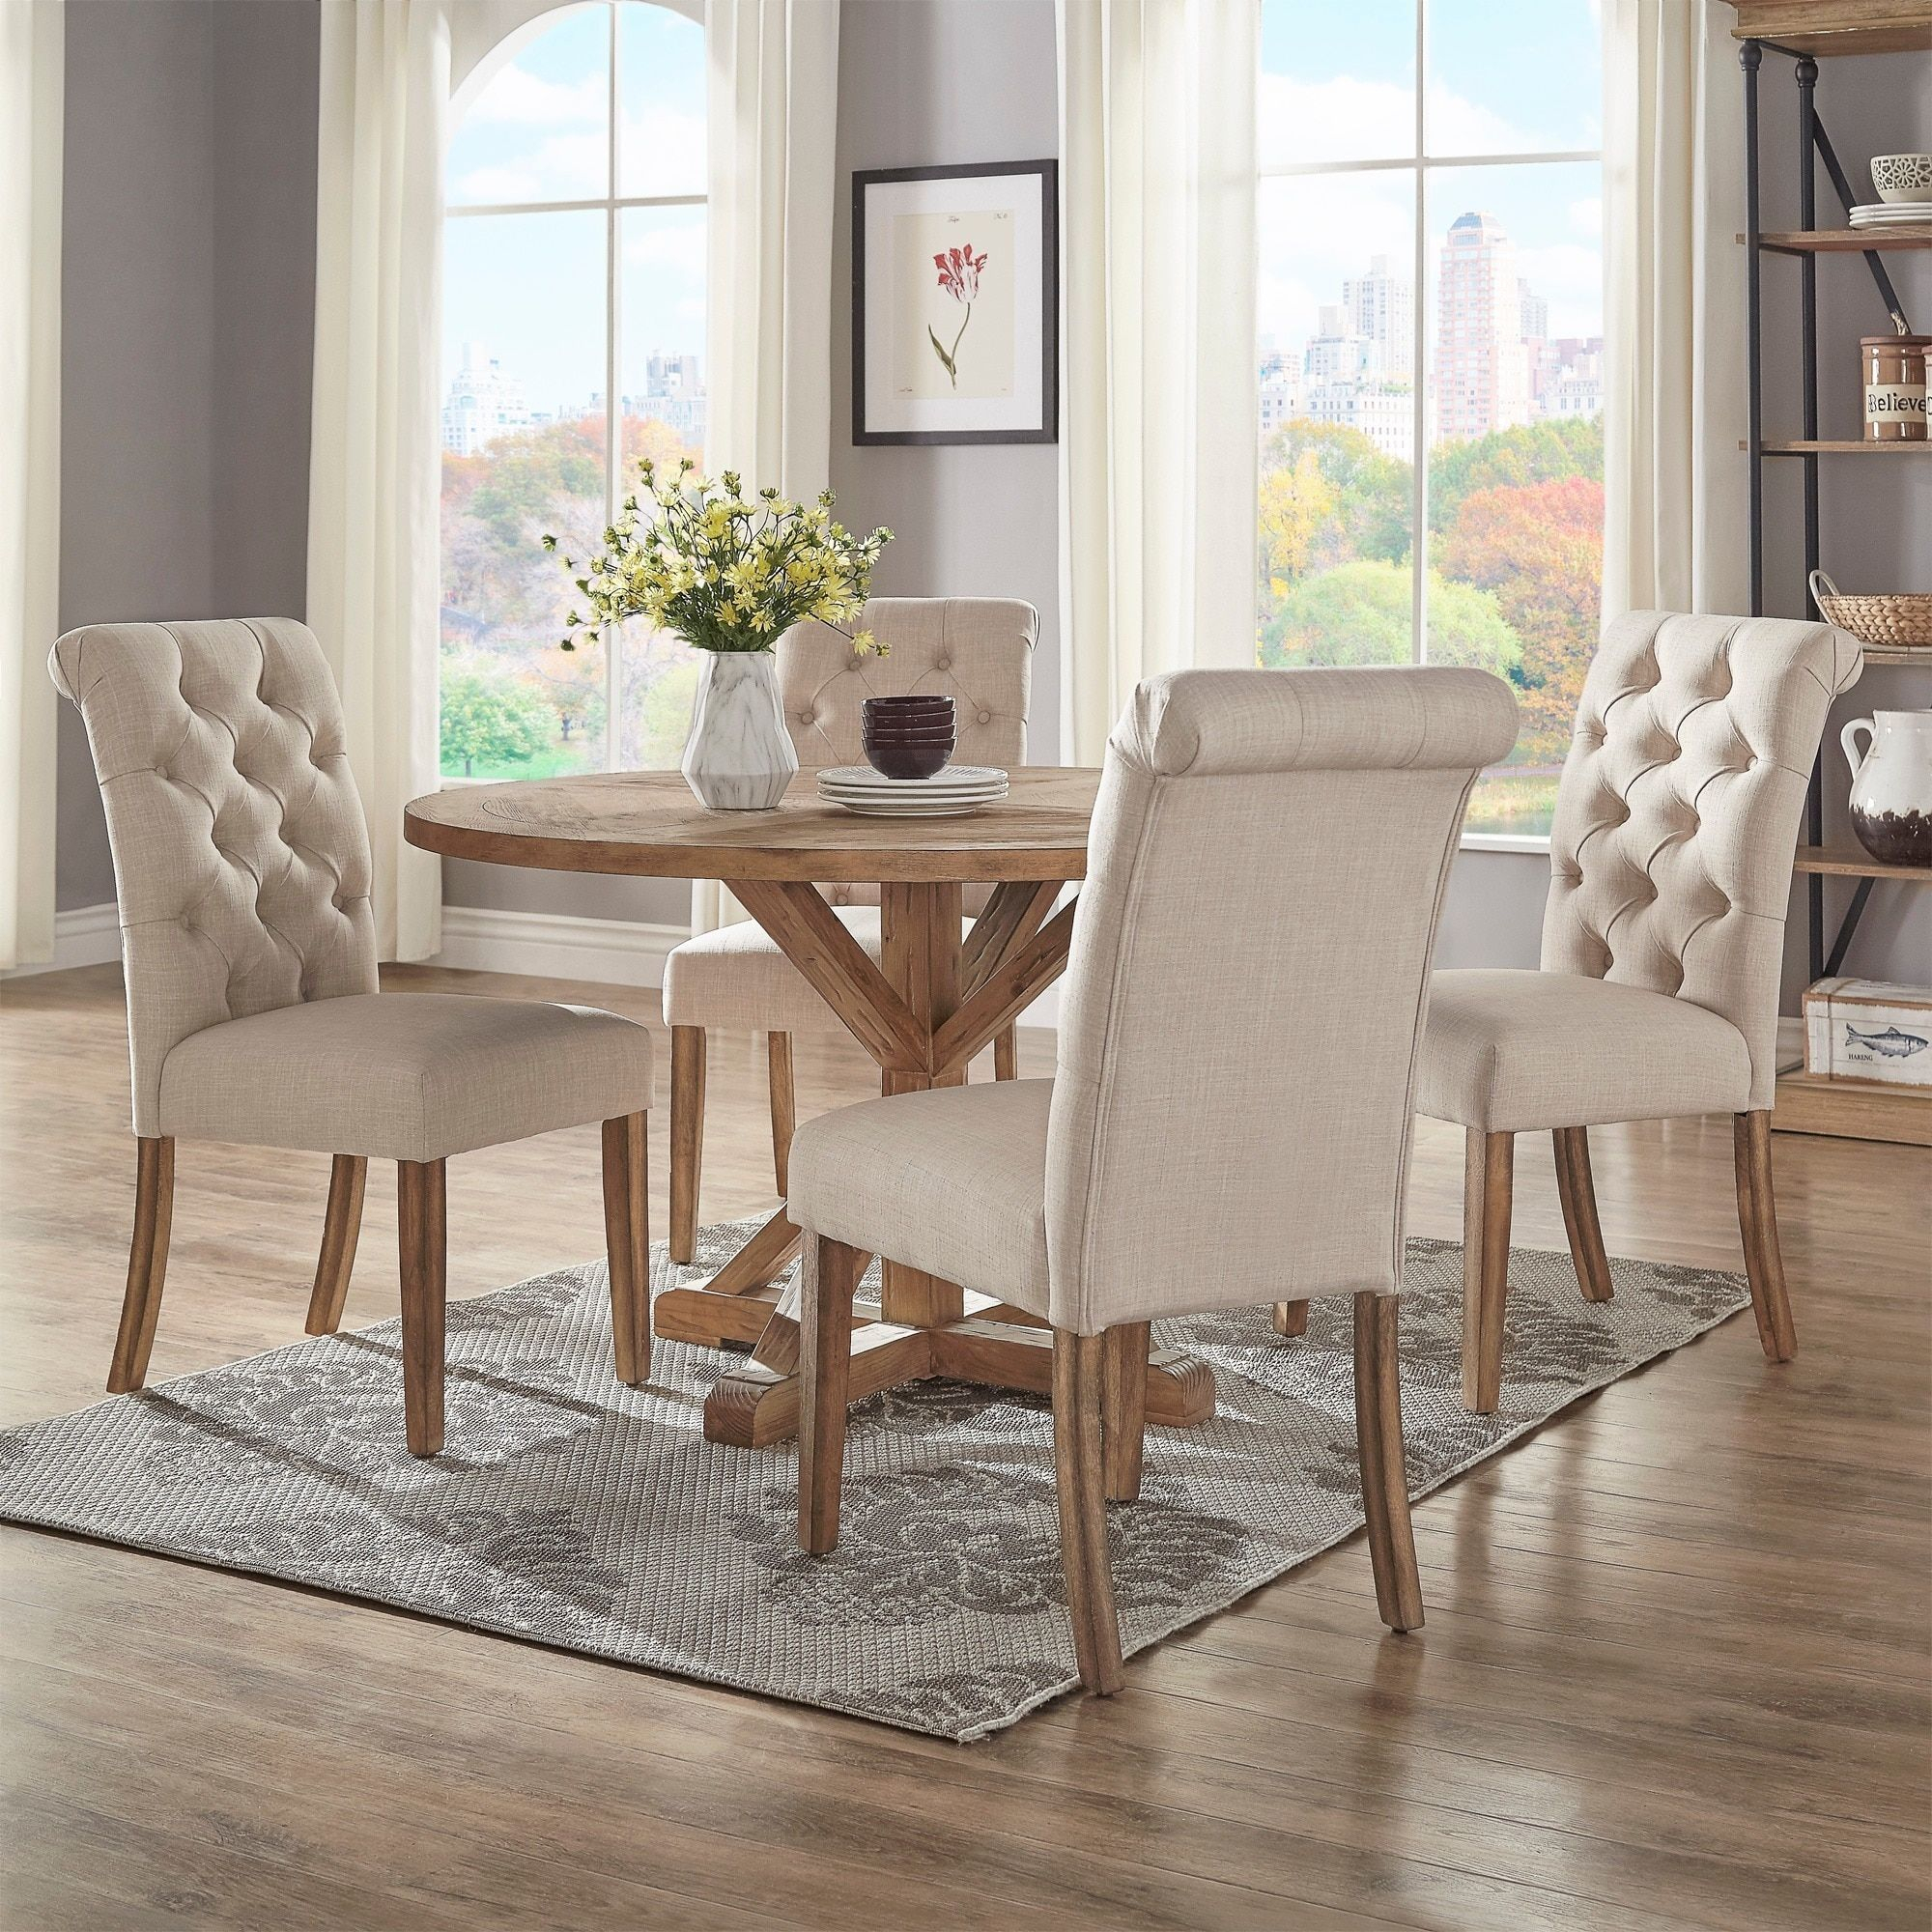 Benchwright Rustic X Base 48 Inch Round Dining Table Set For Latest Benchwright Round Pedestal Dining Tables (View 3 of 25)